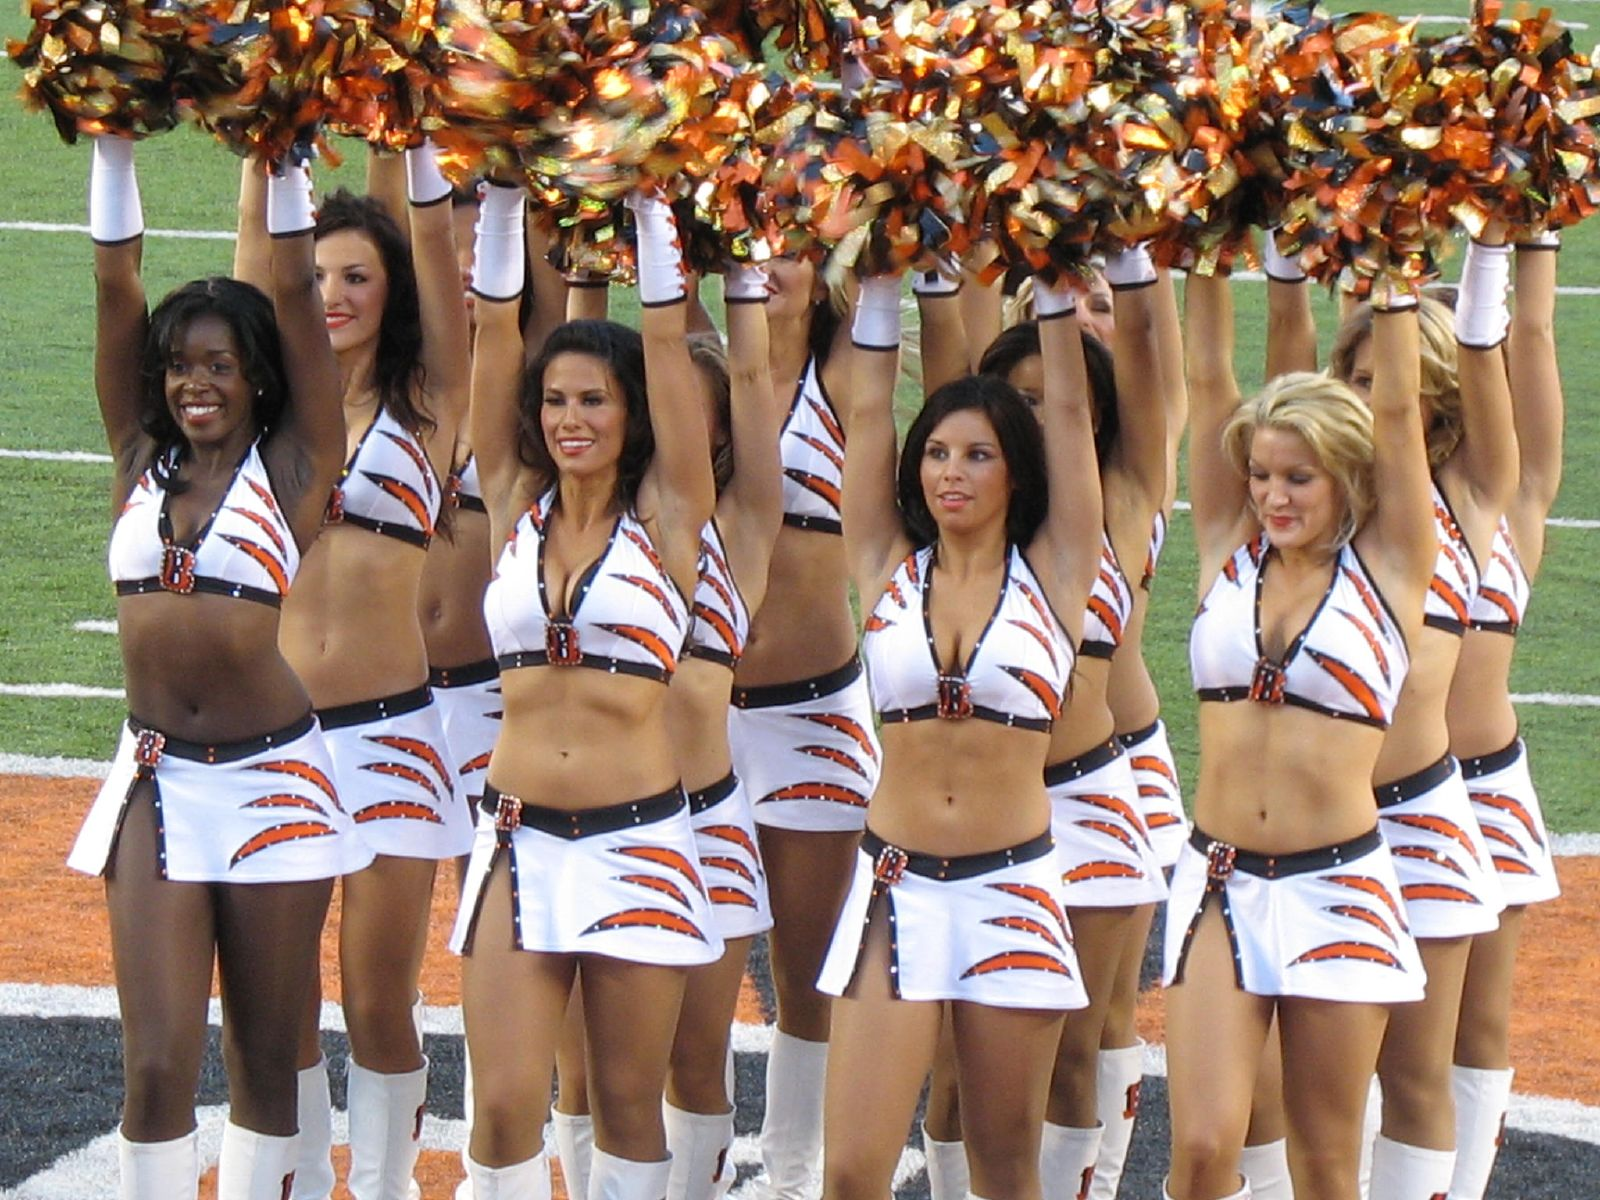 Cincinnati_Bengals_cheerleaders.jpg#CHEERLEADERS%20%201600x1200